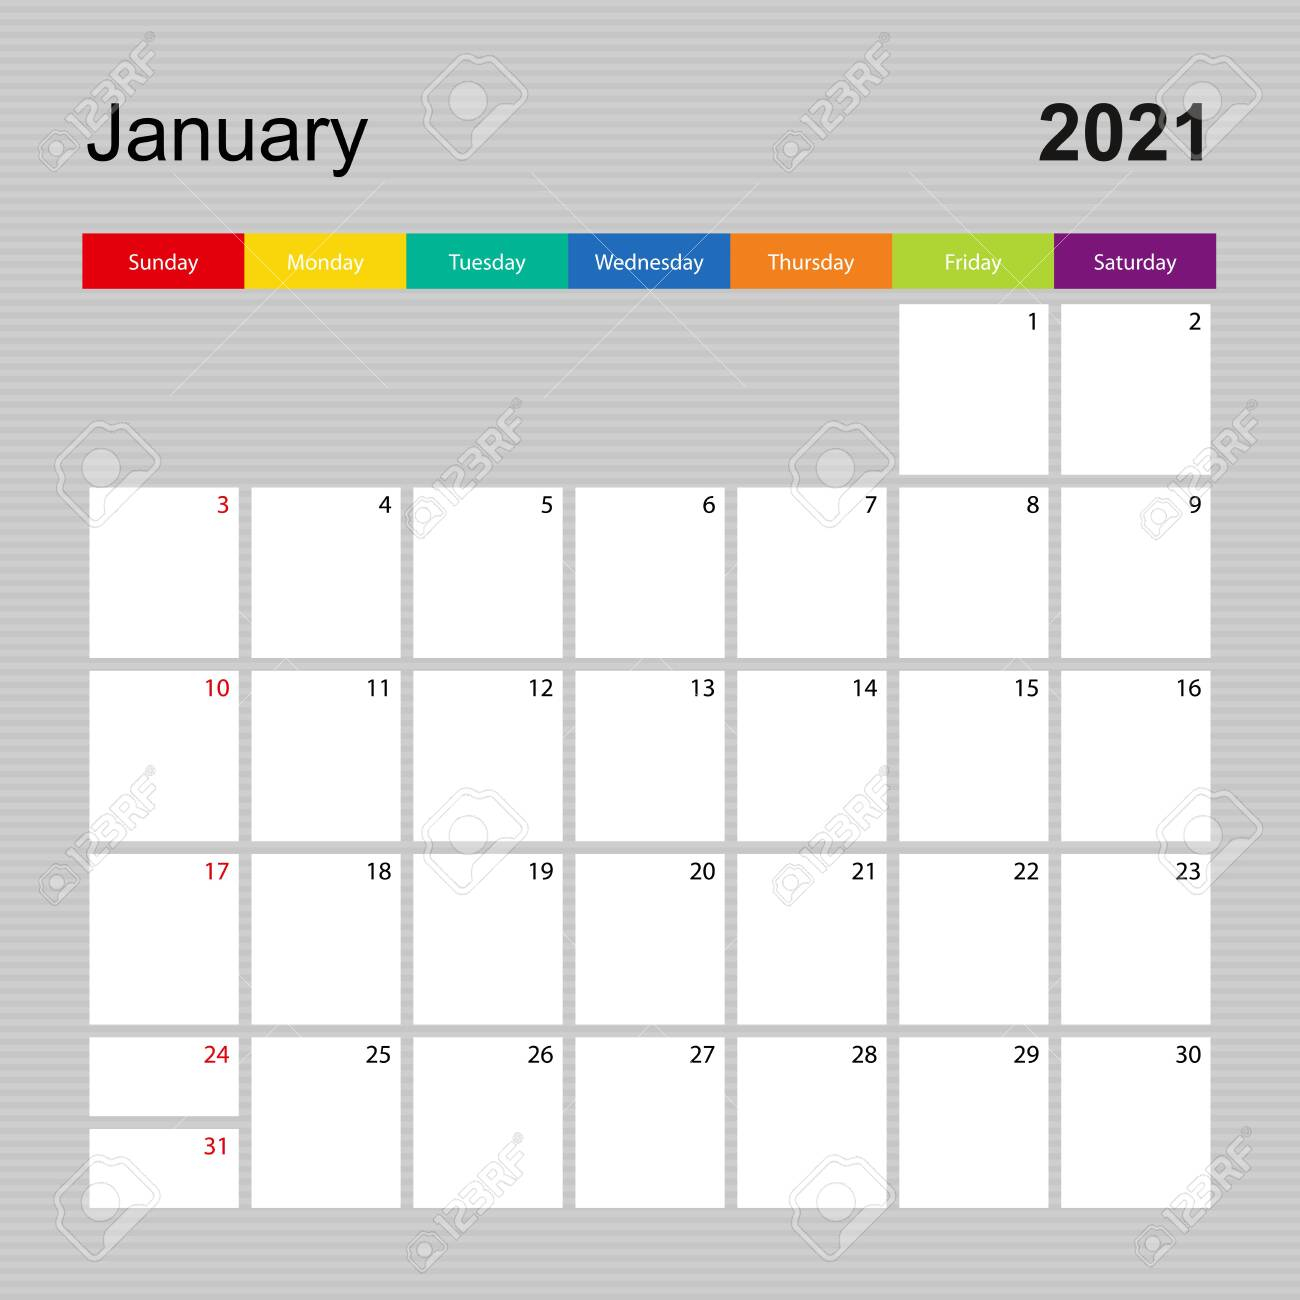 photo Ð¡alendar page for january 2021 wall planner with colorful design week starts on sunday vector calend